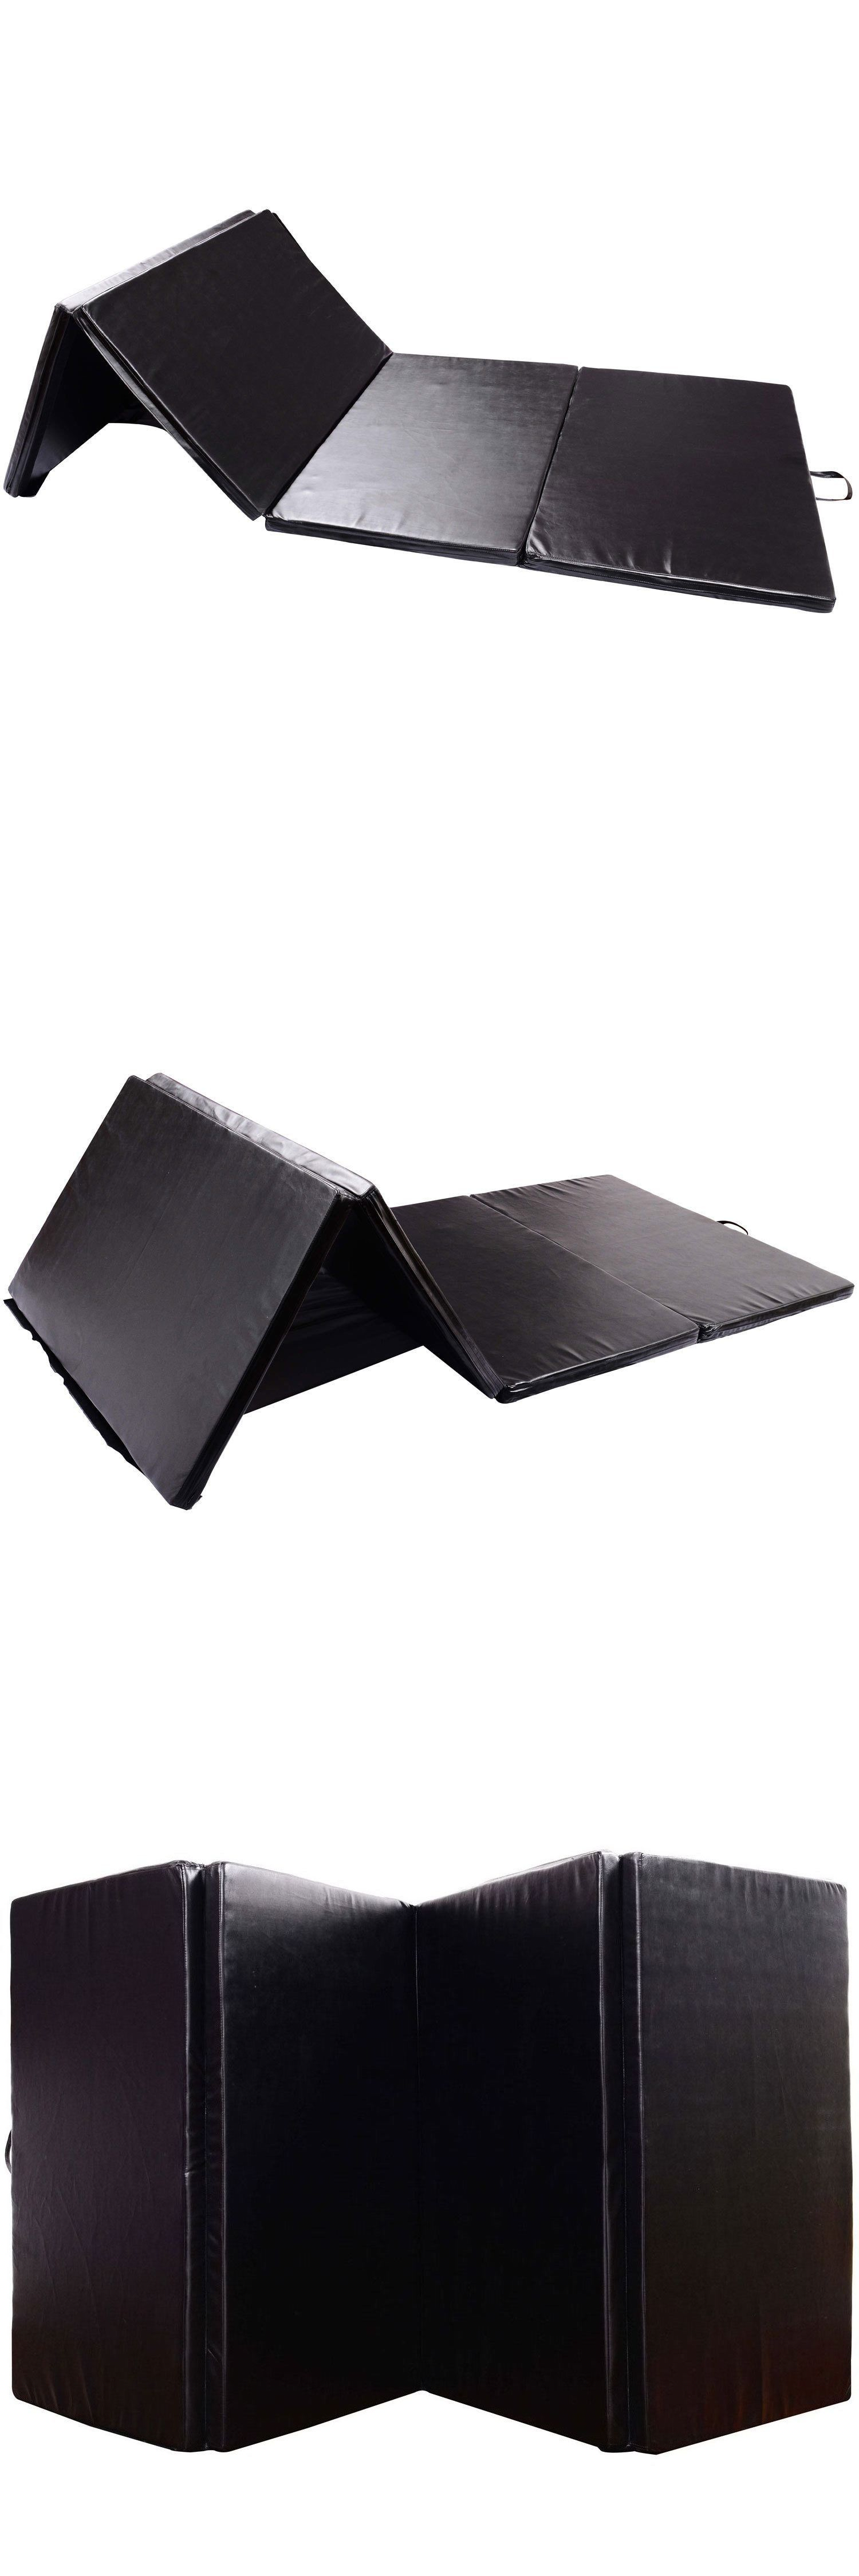 5x Ft Quality Folding Gym Mats Are To The Highest Grade